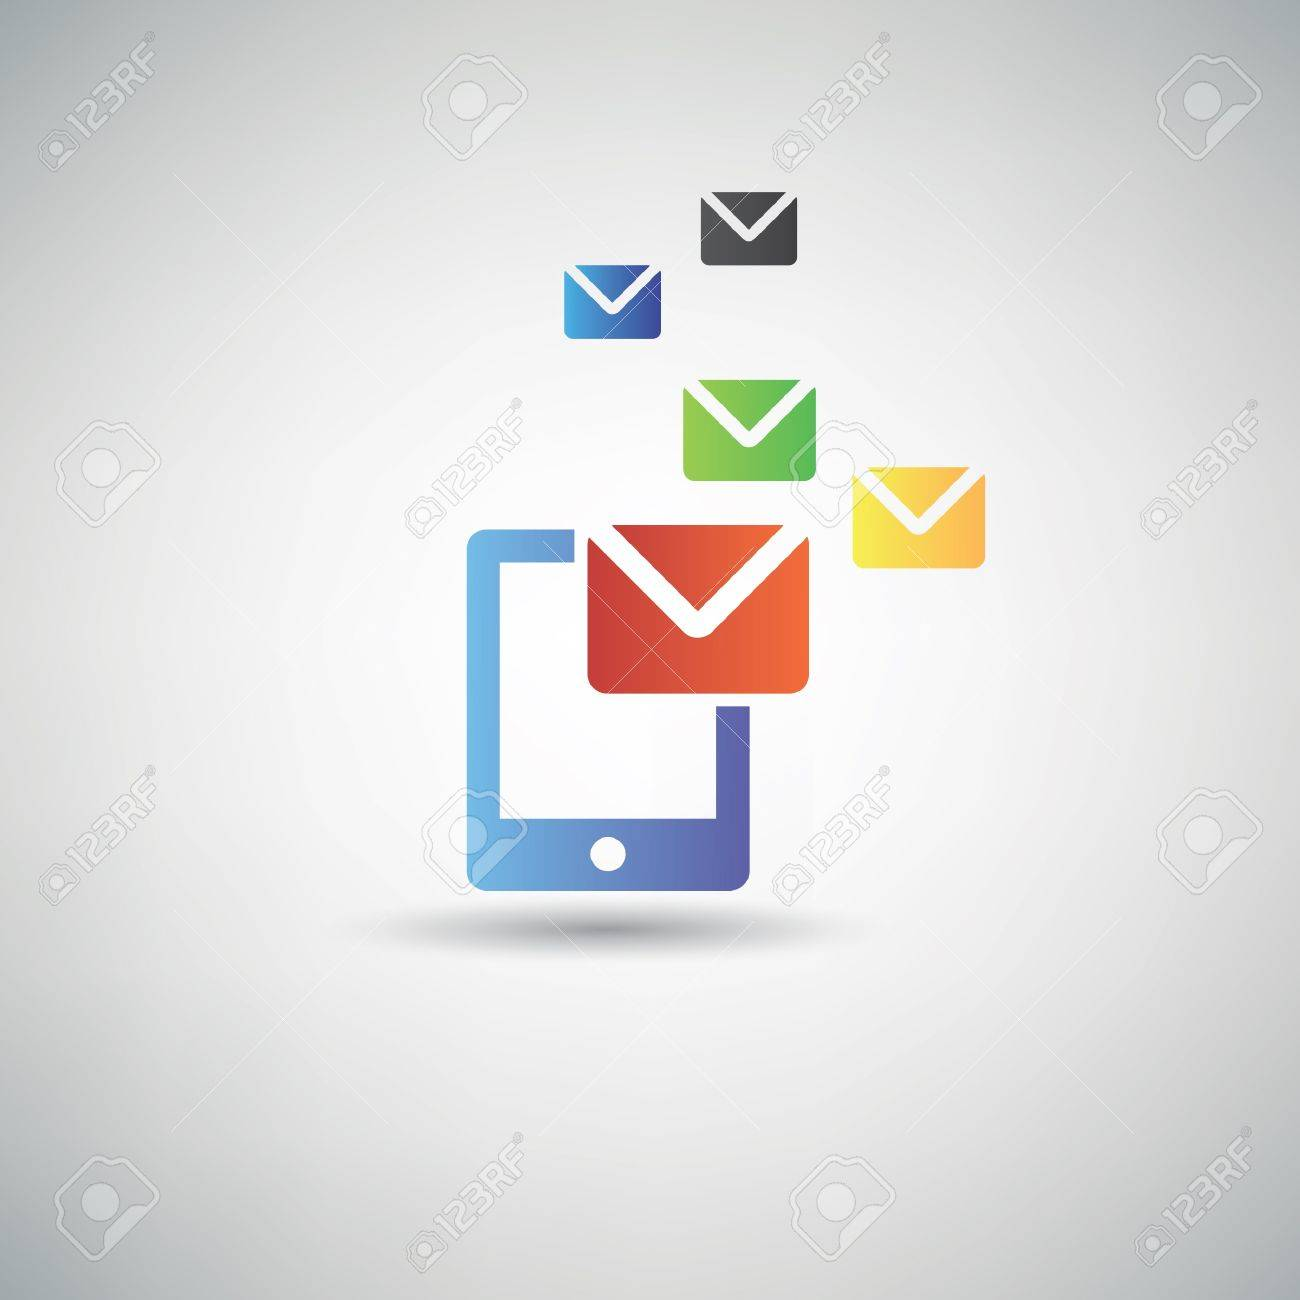 Email symbol Stock Vector - 20565087